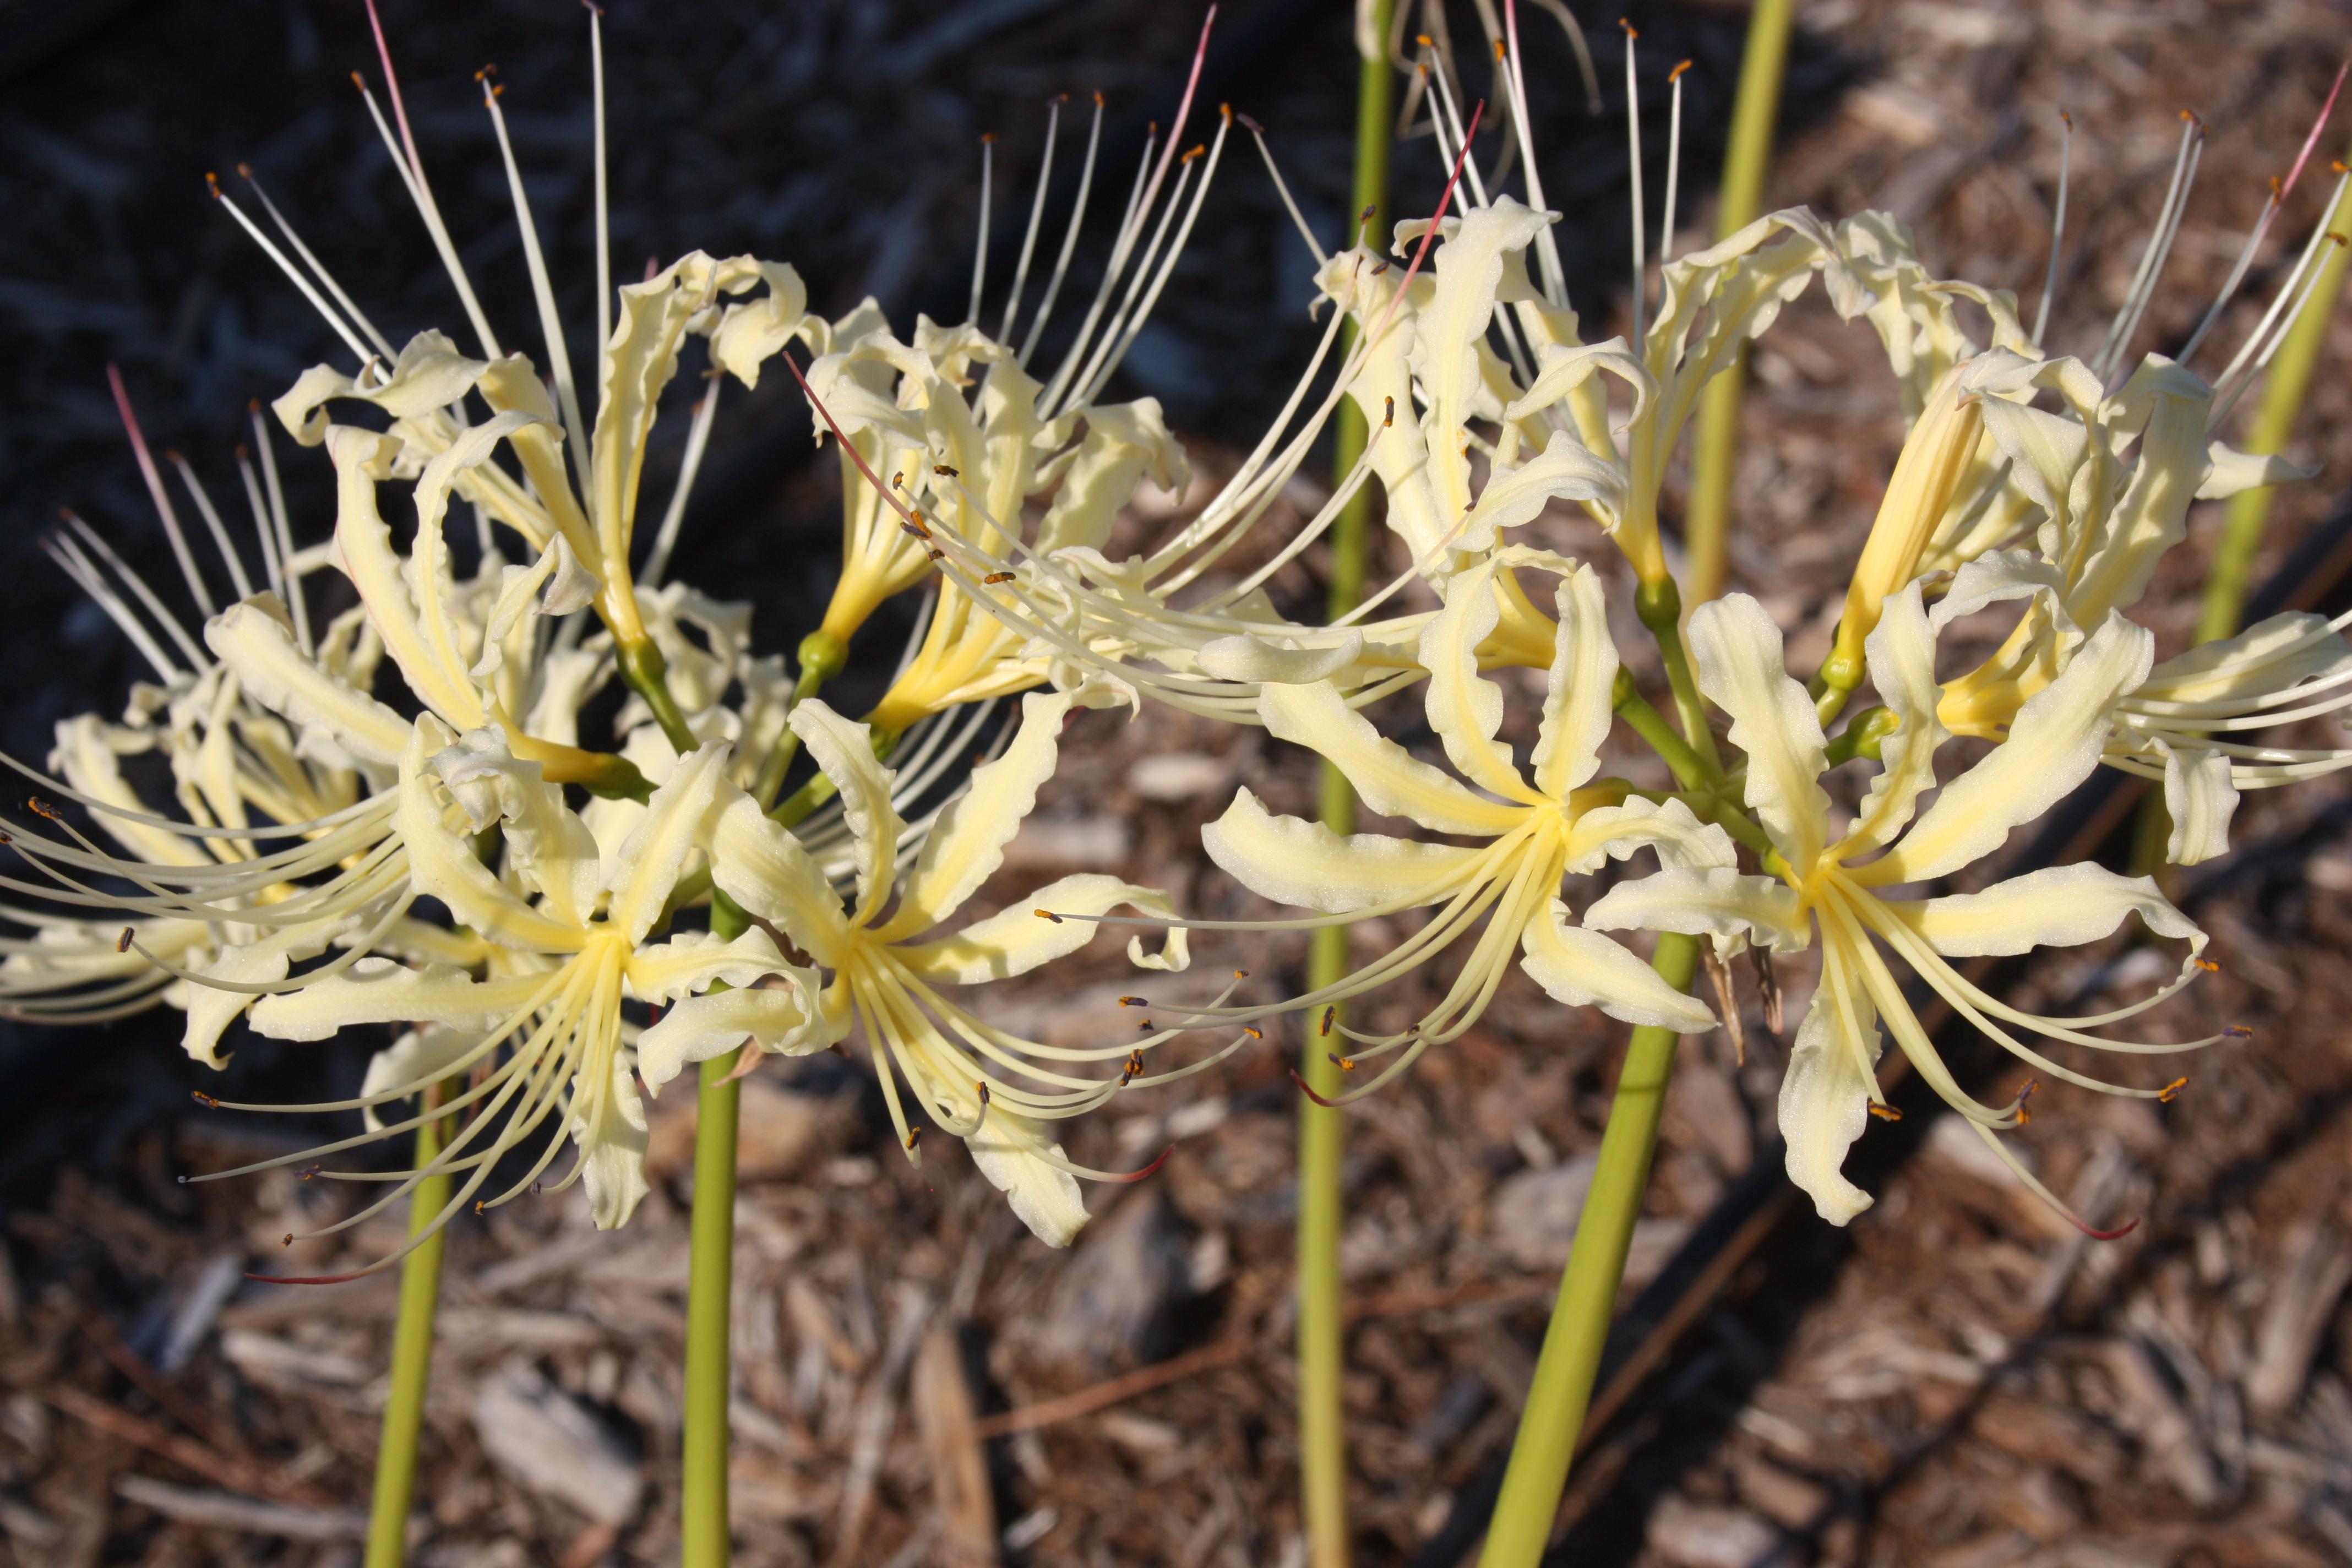 Lycoris x straminea 'Golden Panda' @ JLBG - a selection from a Chinese nursery as Lycoris shaanxiensis, but was instead the fall flowering hybrid of Lycoris radiata var. pumila x chinensis